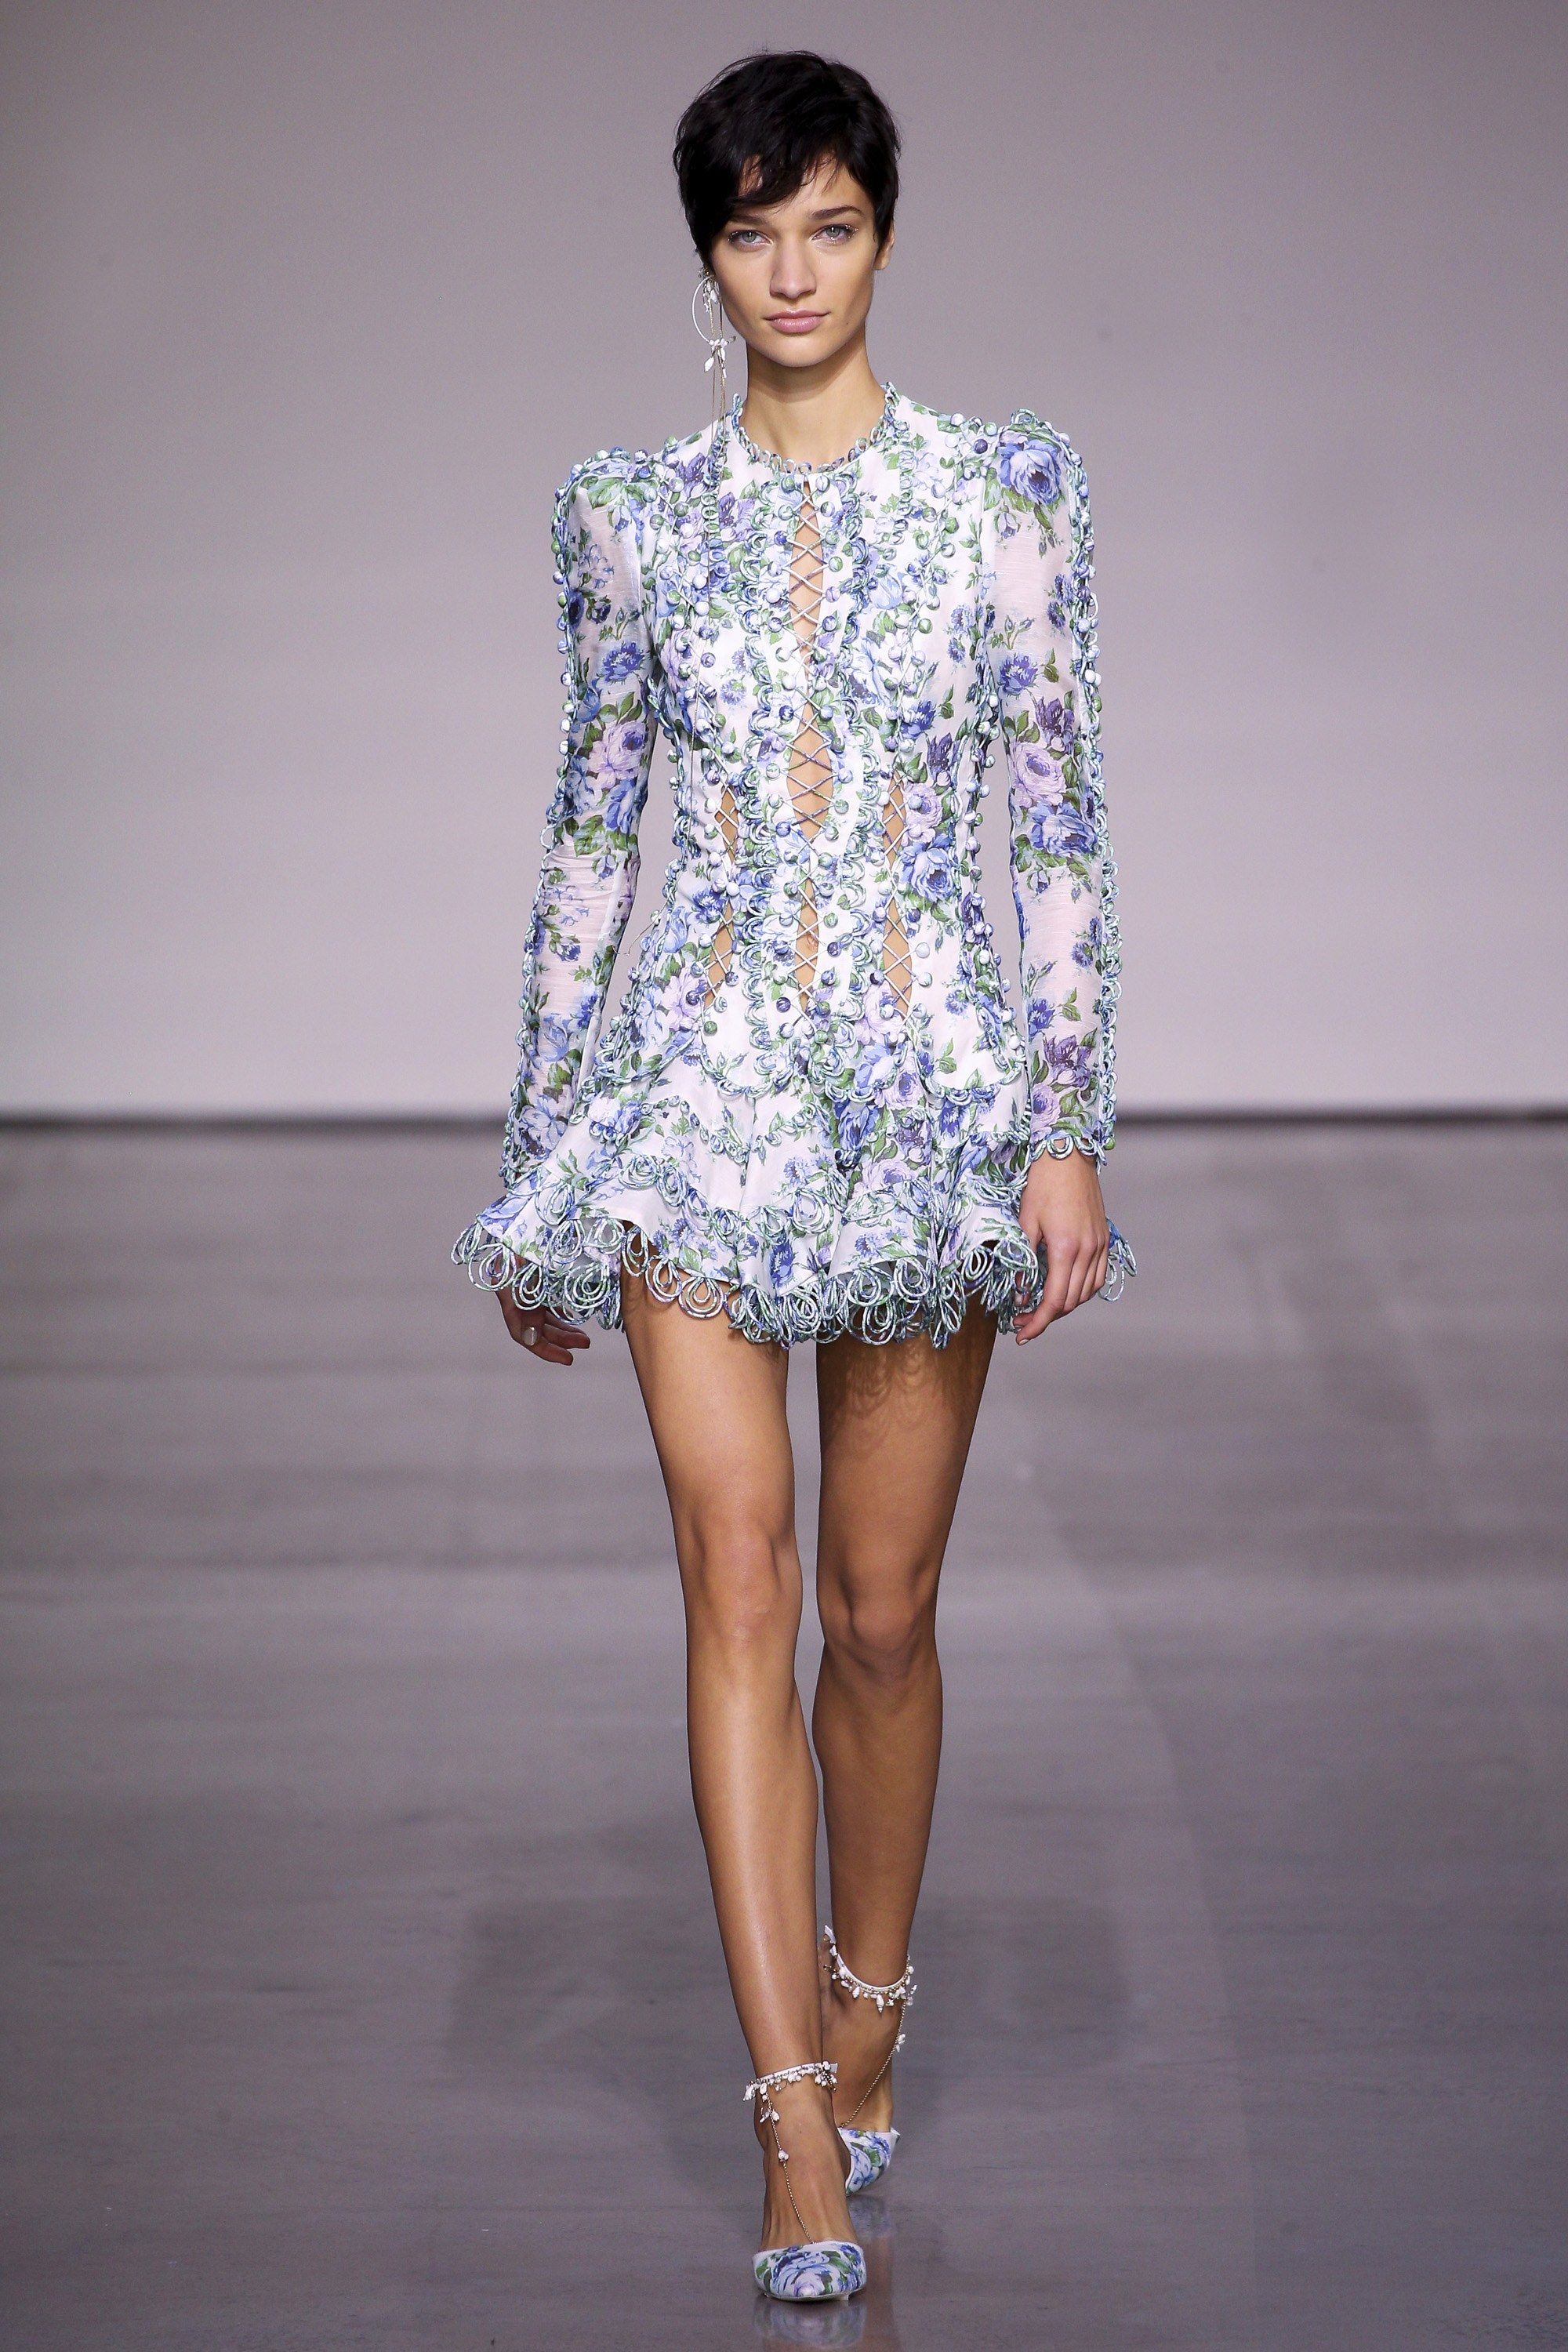 87851cb3738 Zimmermann Spring 2018 Ready-to-Wear Collection Photos - Vogue